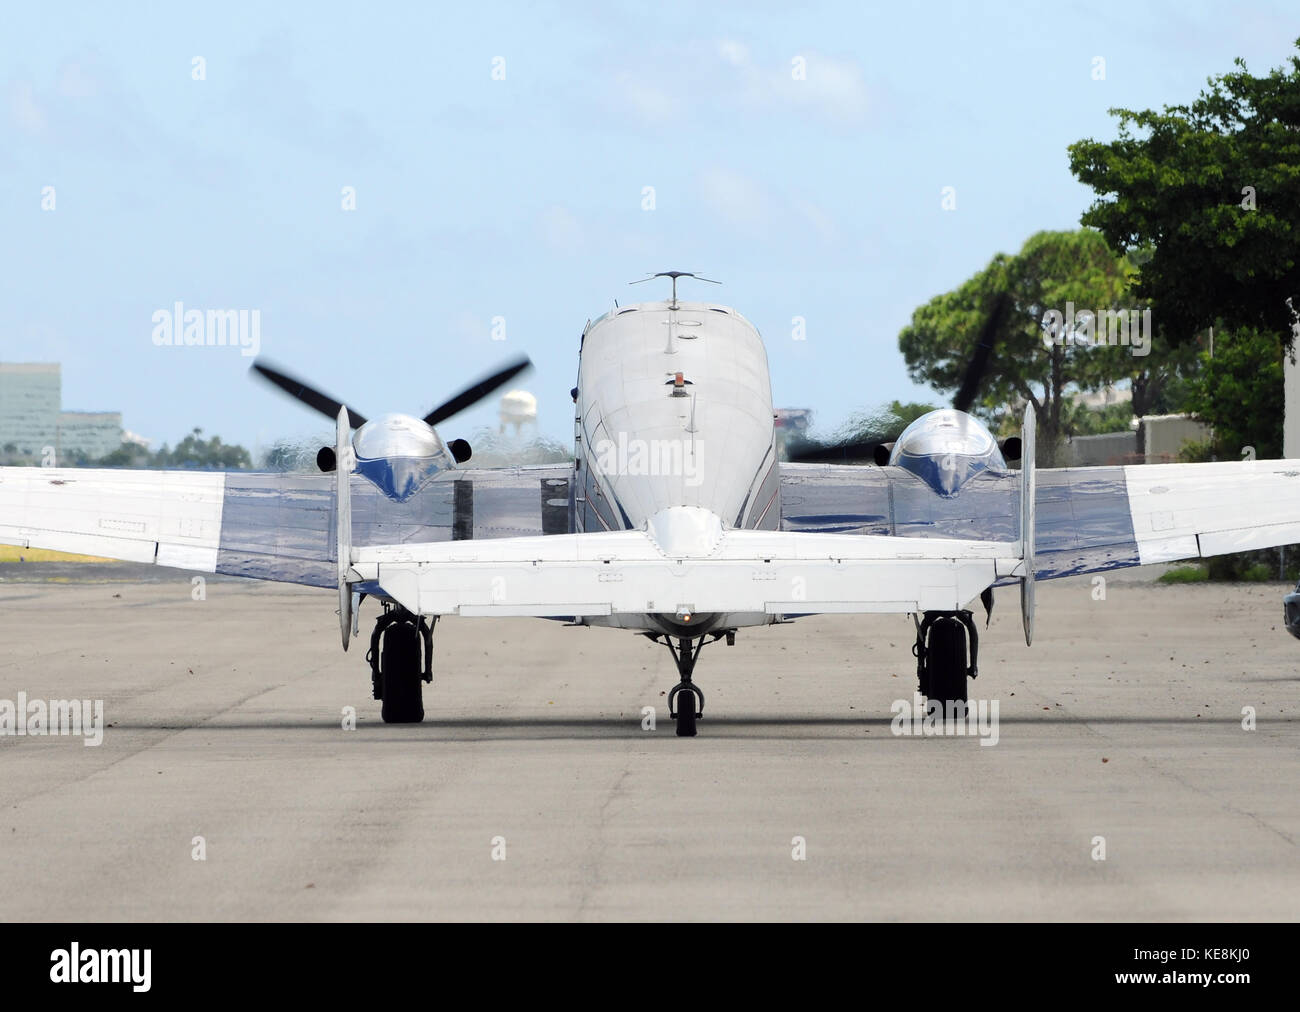 Classic turboprop airplane with running engines - Stock Image